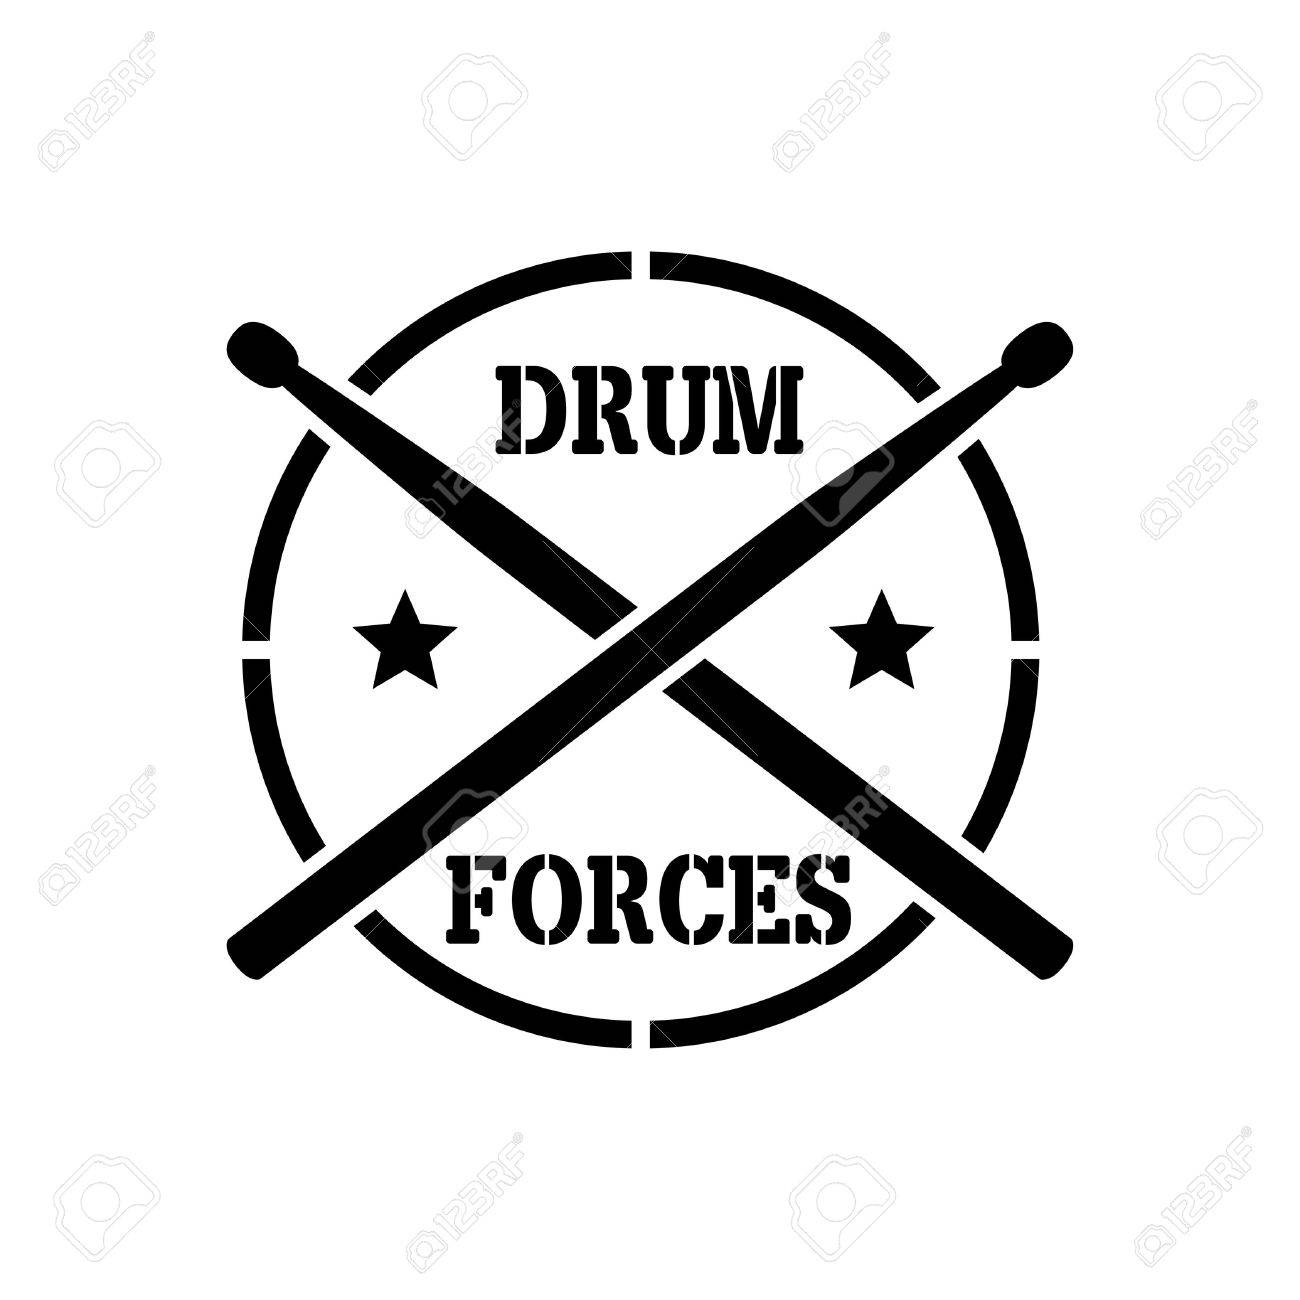 crosed Drum sticks with word drummer forces, vector stencil